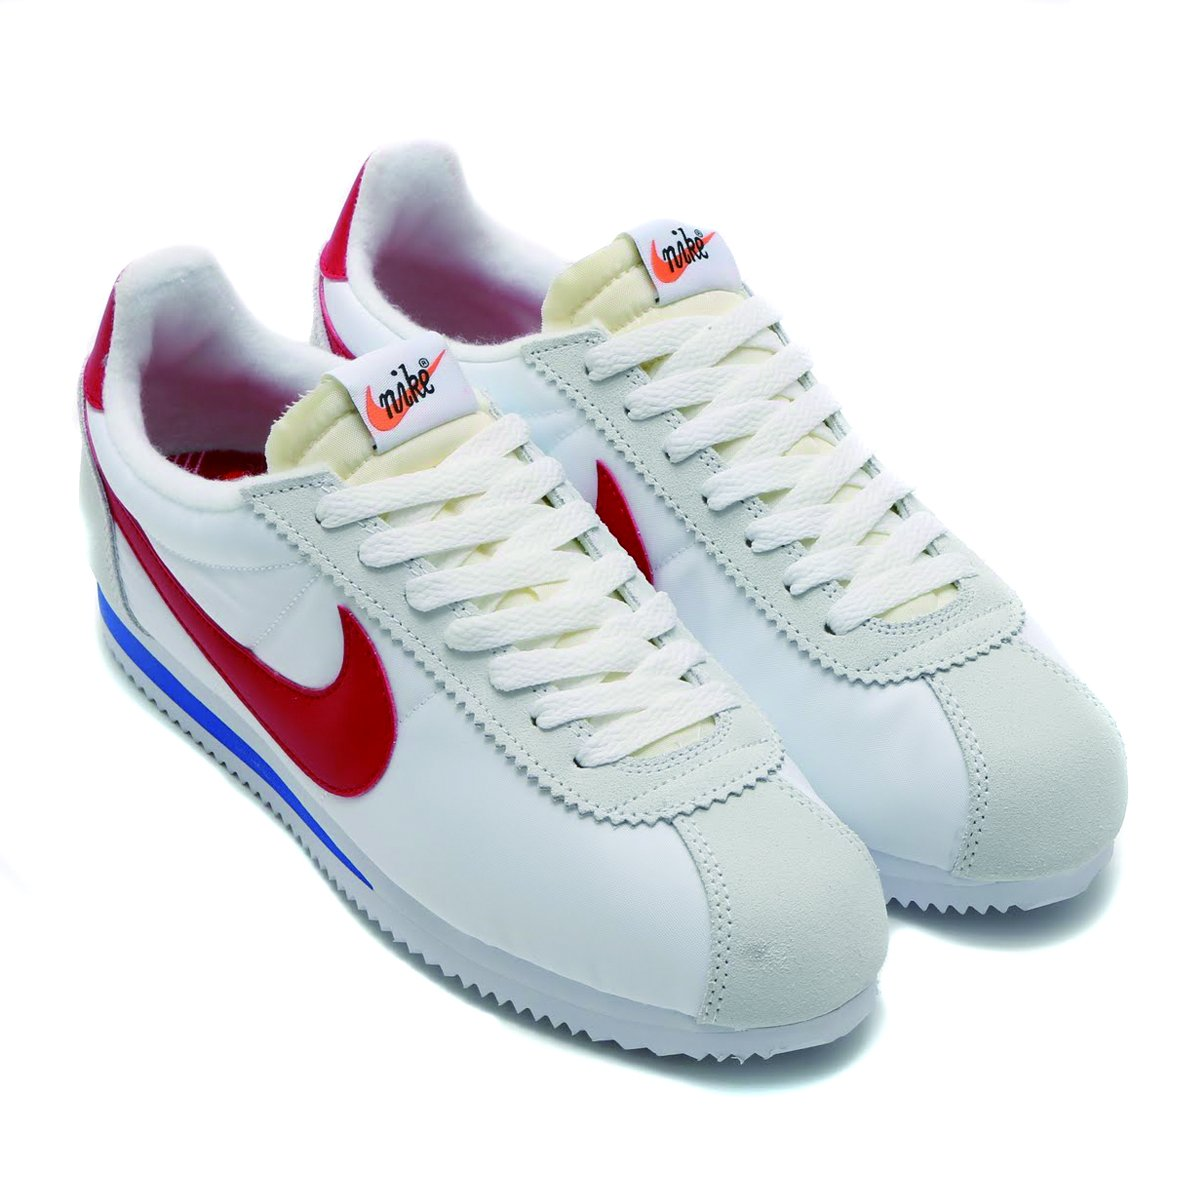 Nike Men Classic Cortez Nylon AW QS (white/varsity red-varsity royal) with Bag - Size 11.5 M US